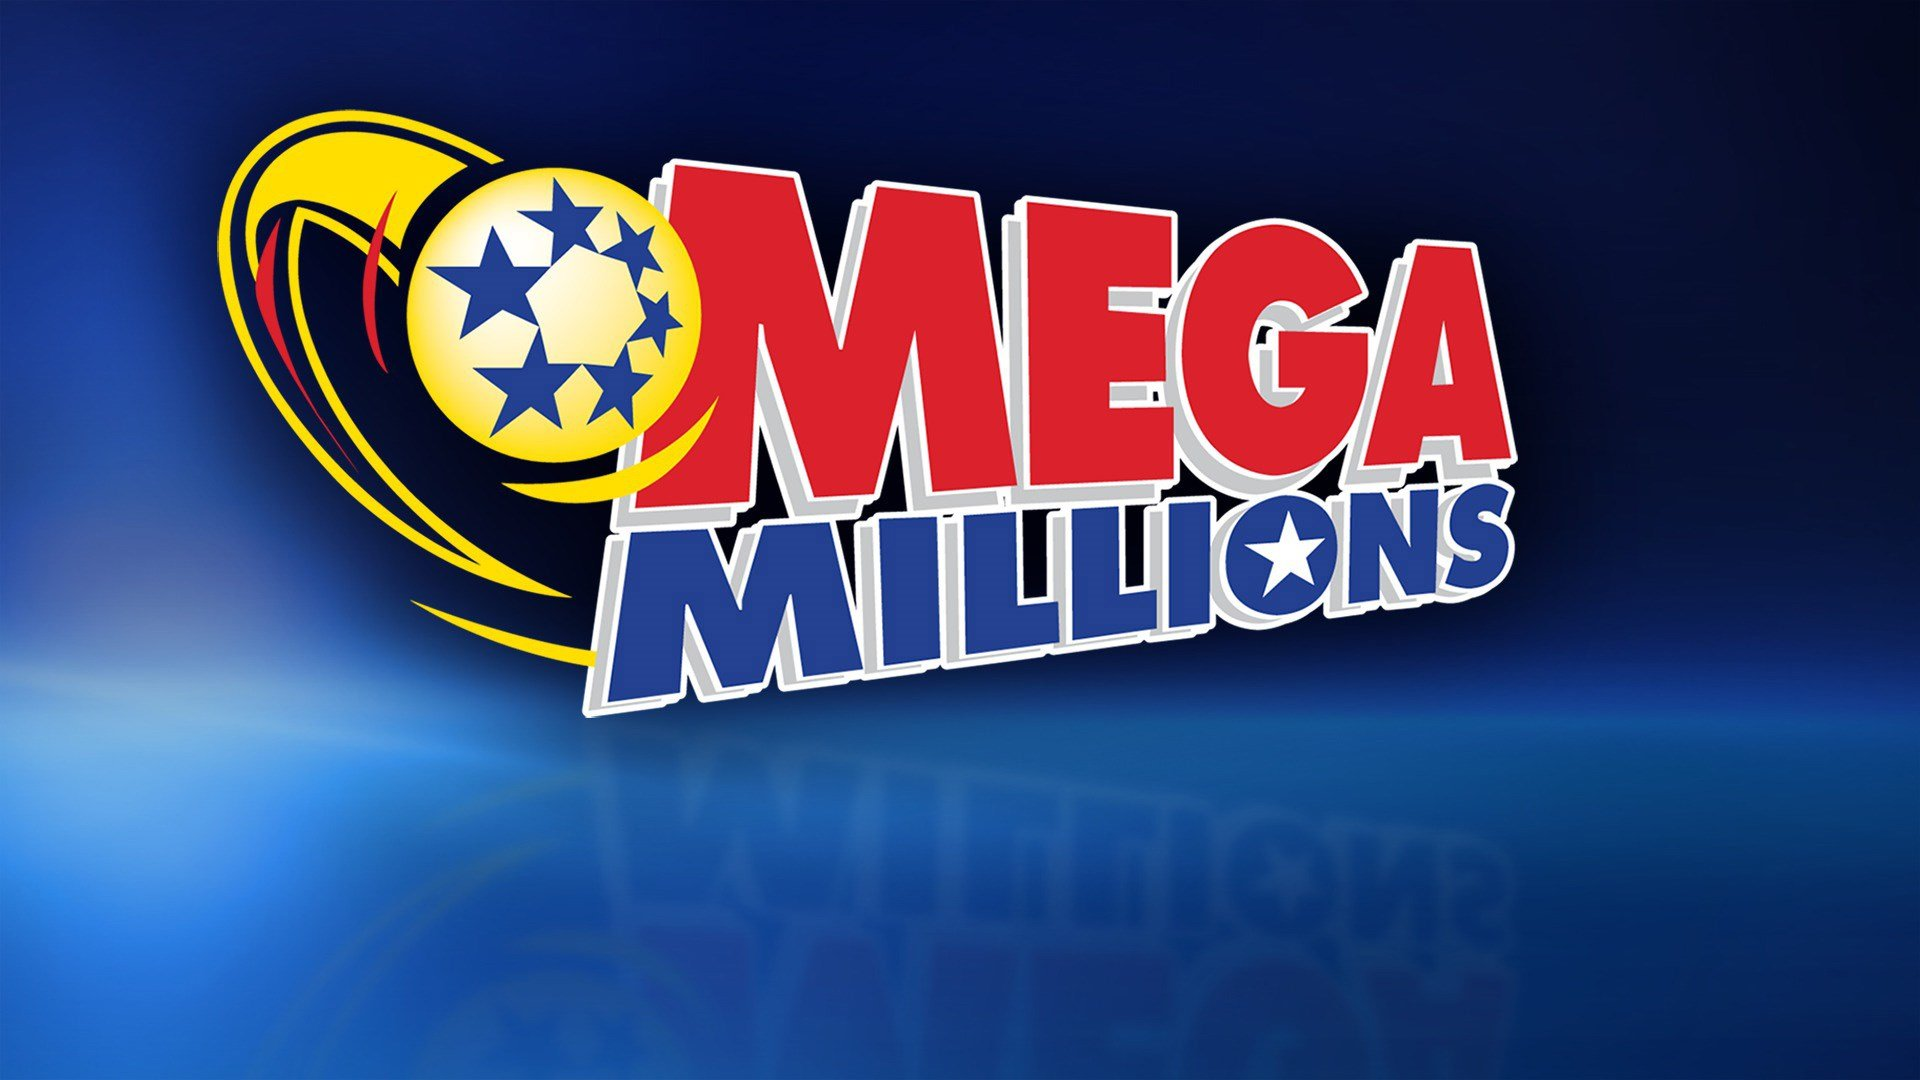 Store That Sold Winning Mega Millions Ticket To Get